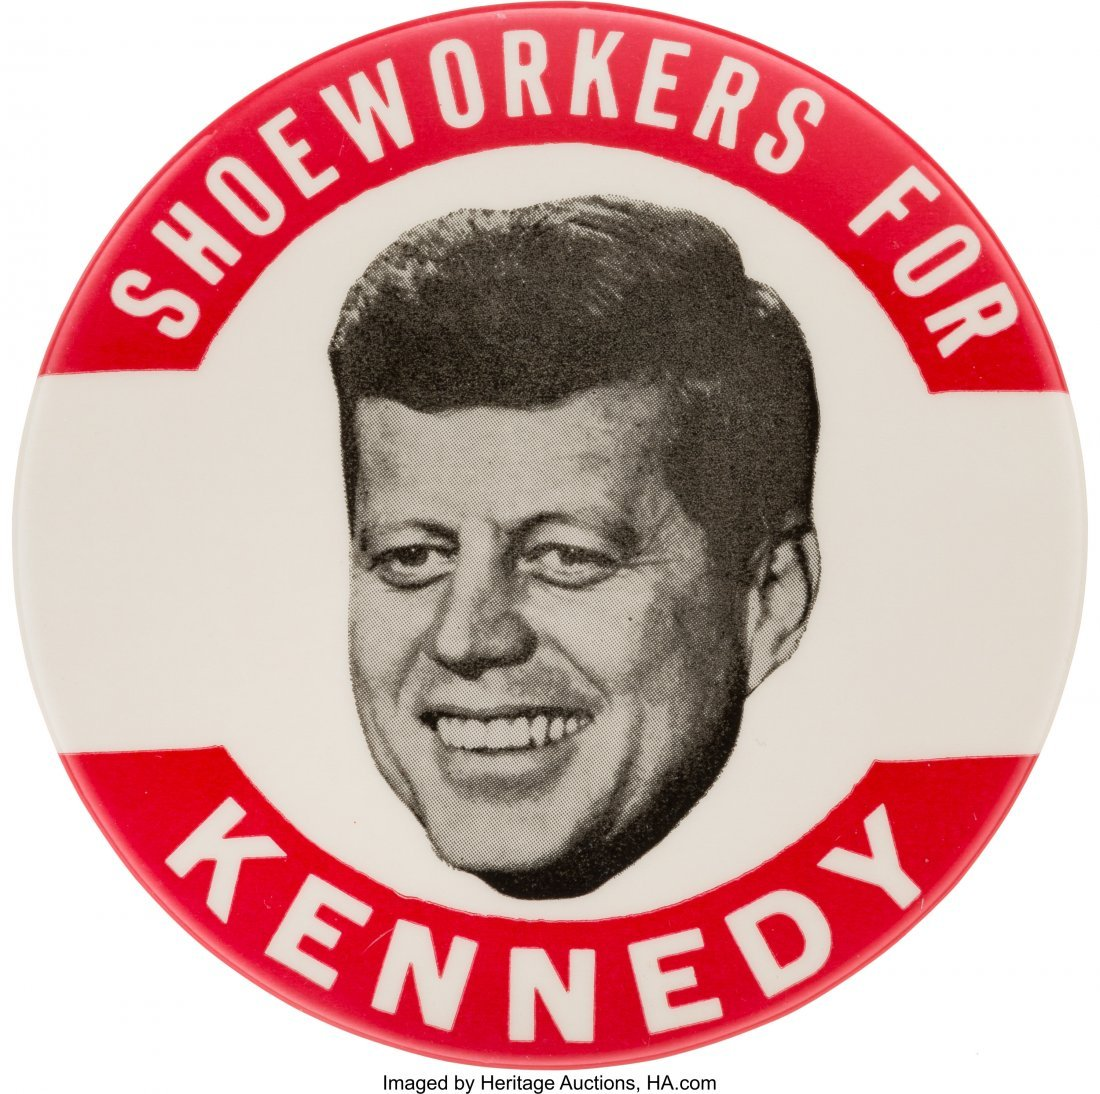 43637: John F. Kennedy: Popular Shoeworkers Picture Pin